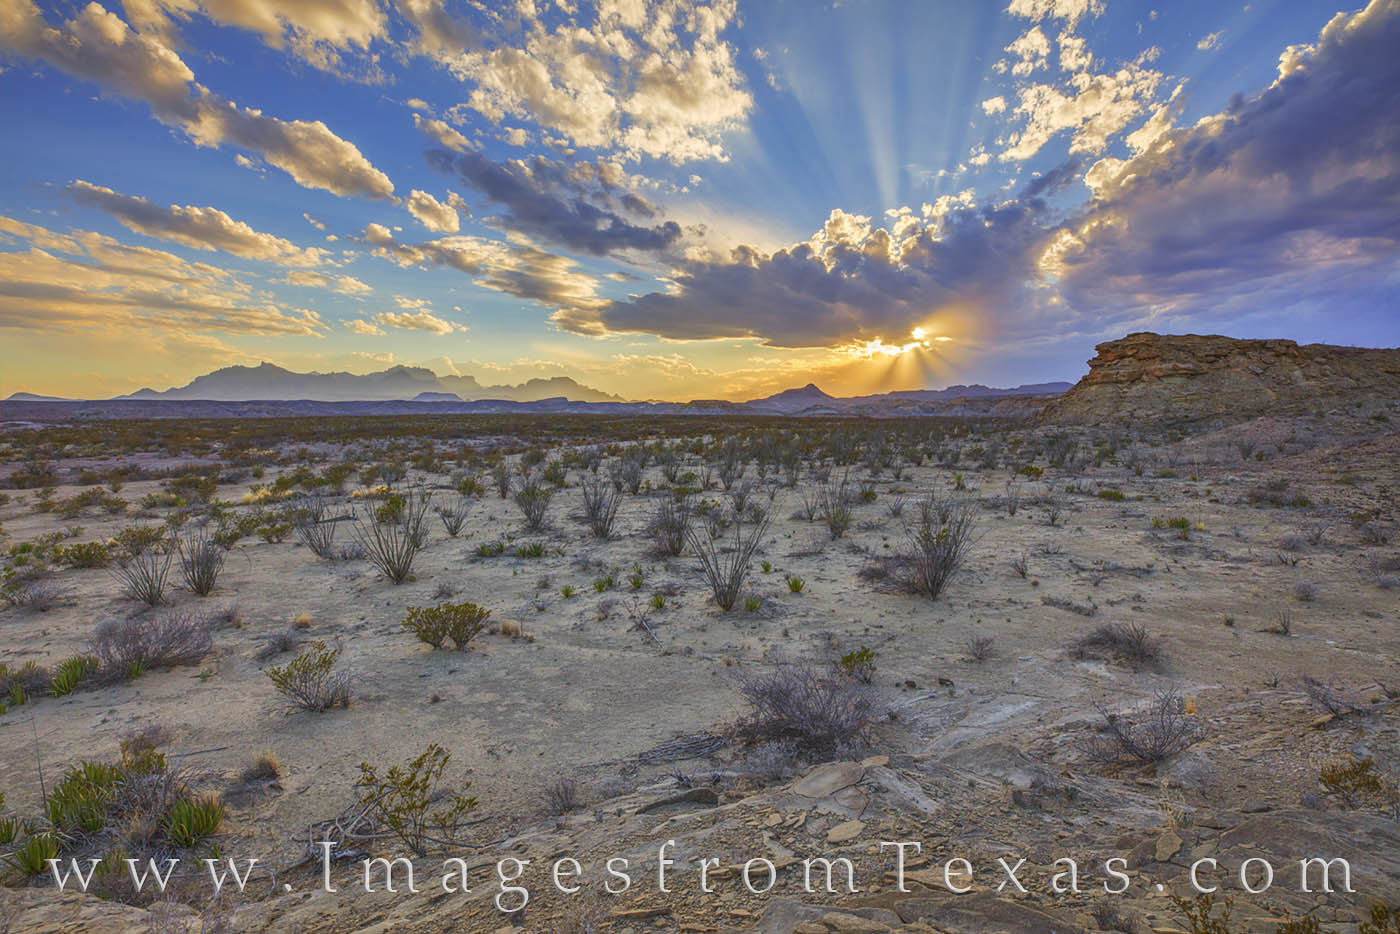 big bend national park, chisos mountains, chihuahuan desert, tornillo flats, big bend prints, sunset, light rays, west texas, texas national parks, photo